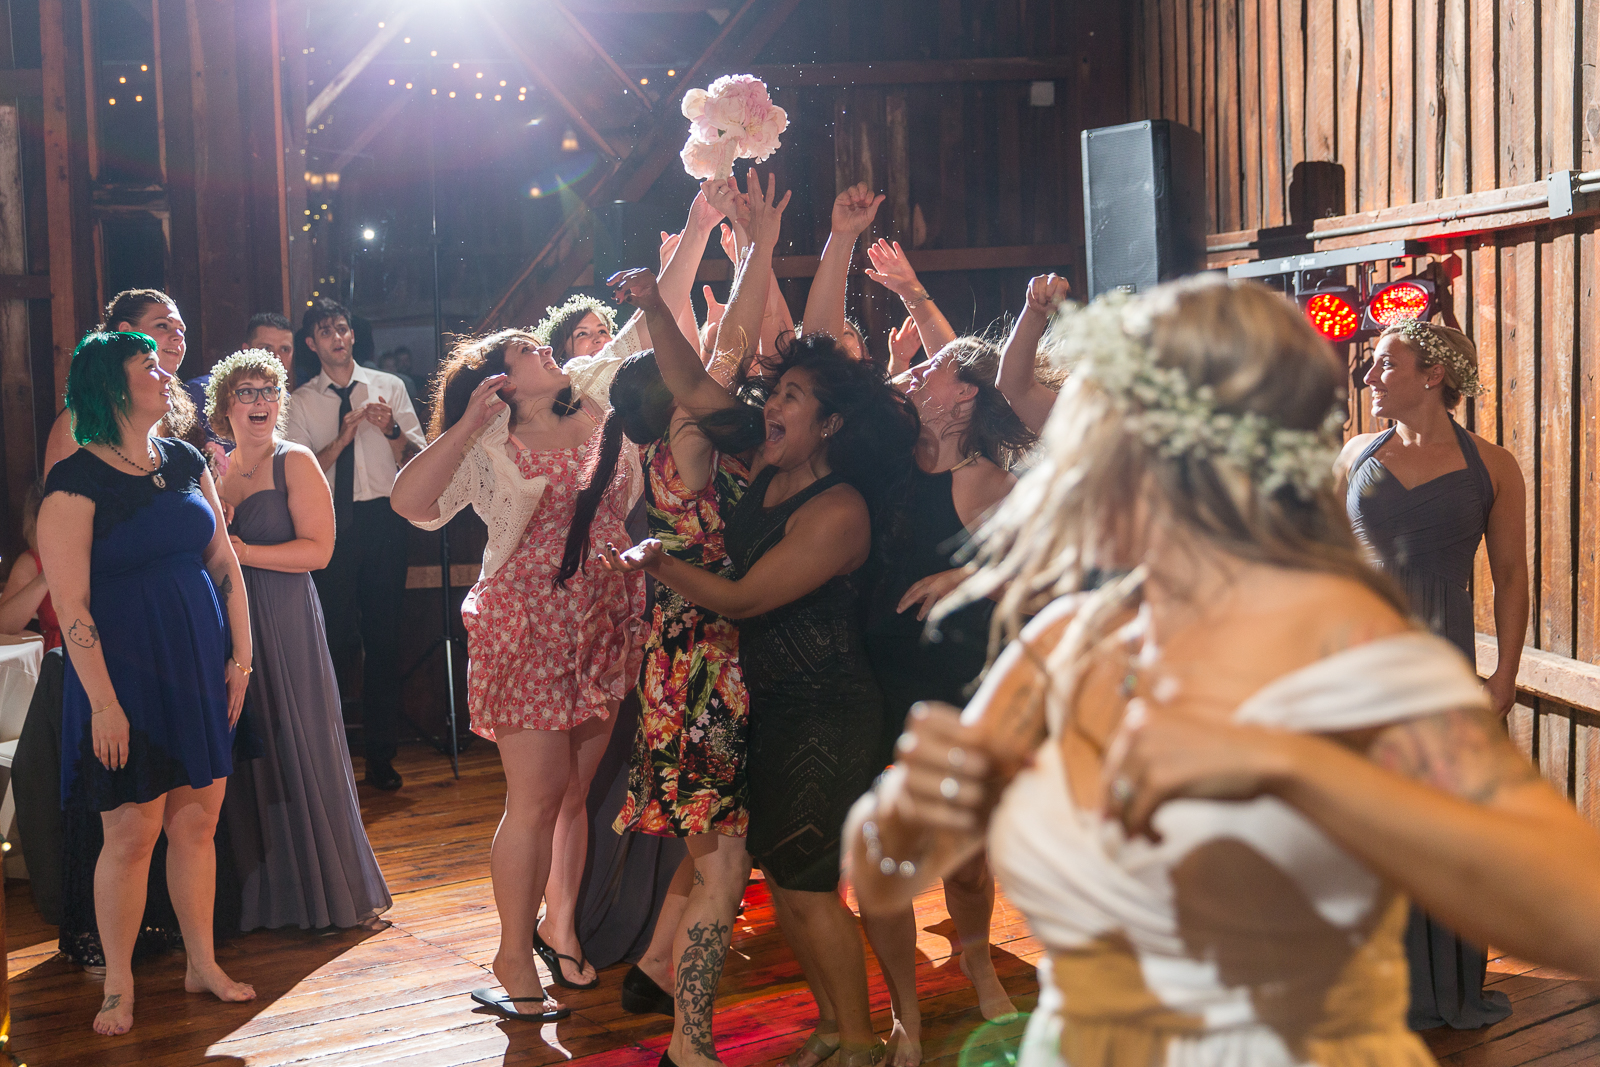 Four_Wings_Photography_Wedding_Red_Barn_at_Hampshire_College-59.jpg